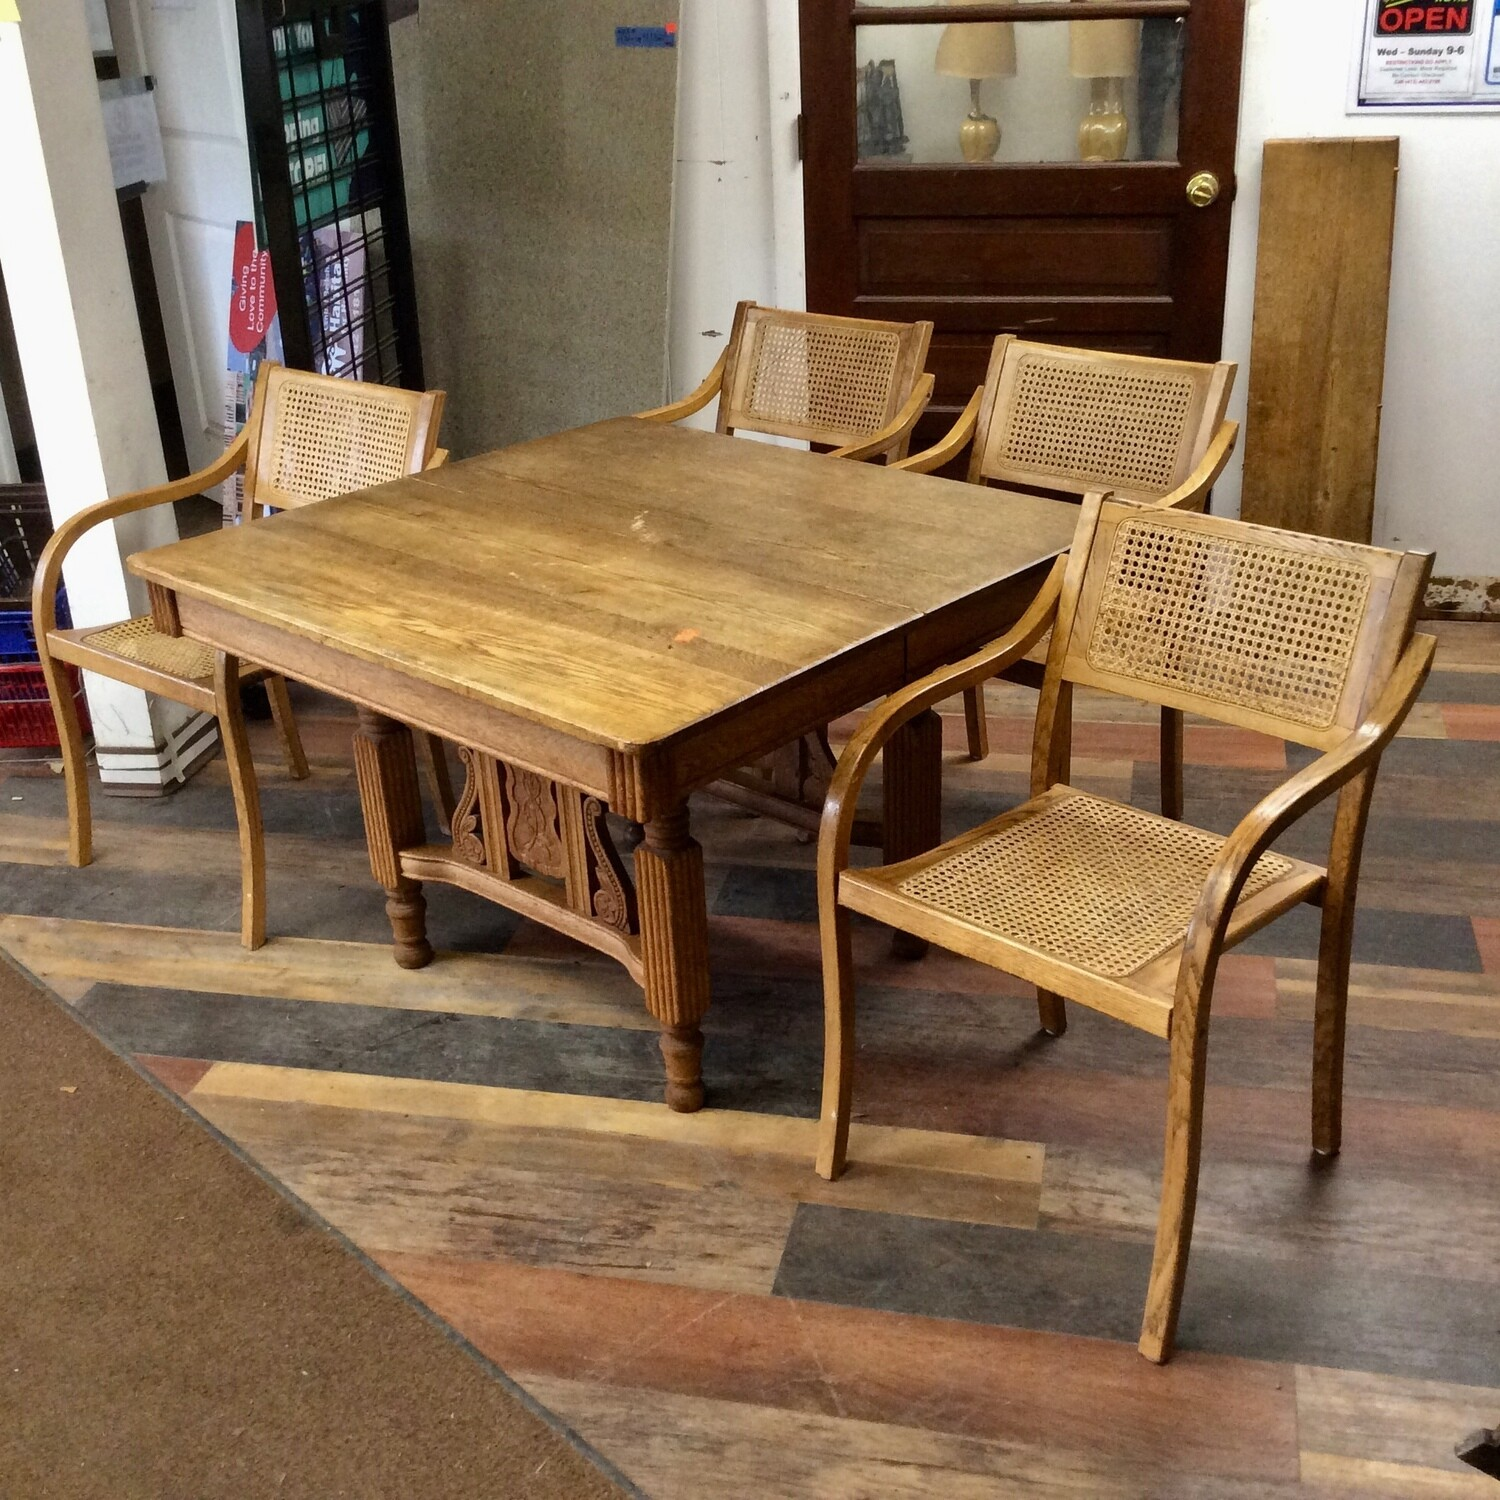 All-Wood Table & 4 Chairs Set